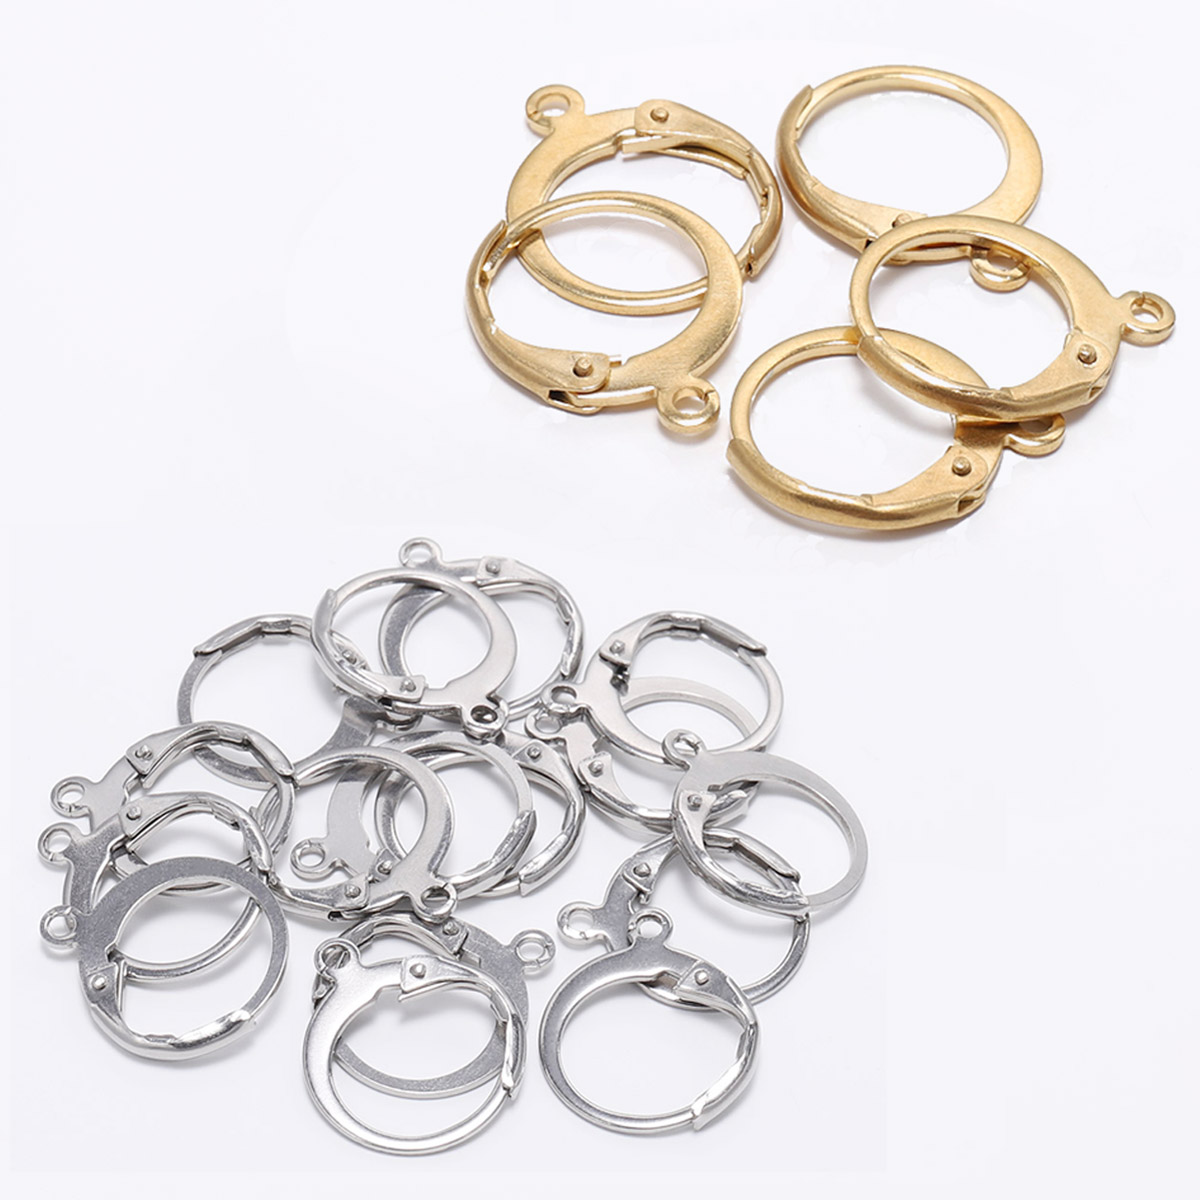 20pcs/lot Gold Stainless Steel French Lever Earring Hooks Wire Settings Base Hoops Earrings For DIY Jewelry Making Supplies|Jewelry Findings & Components| |  - AliExpress